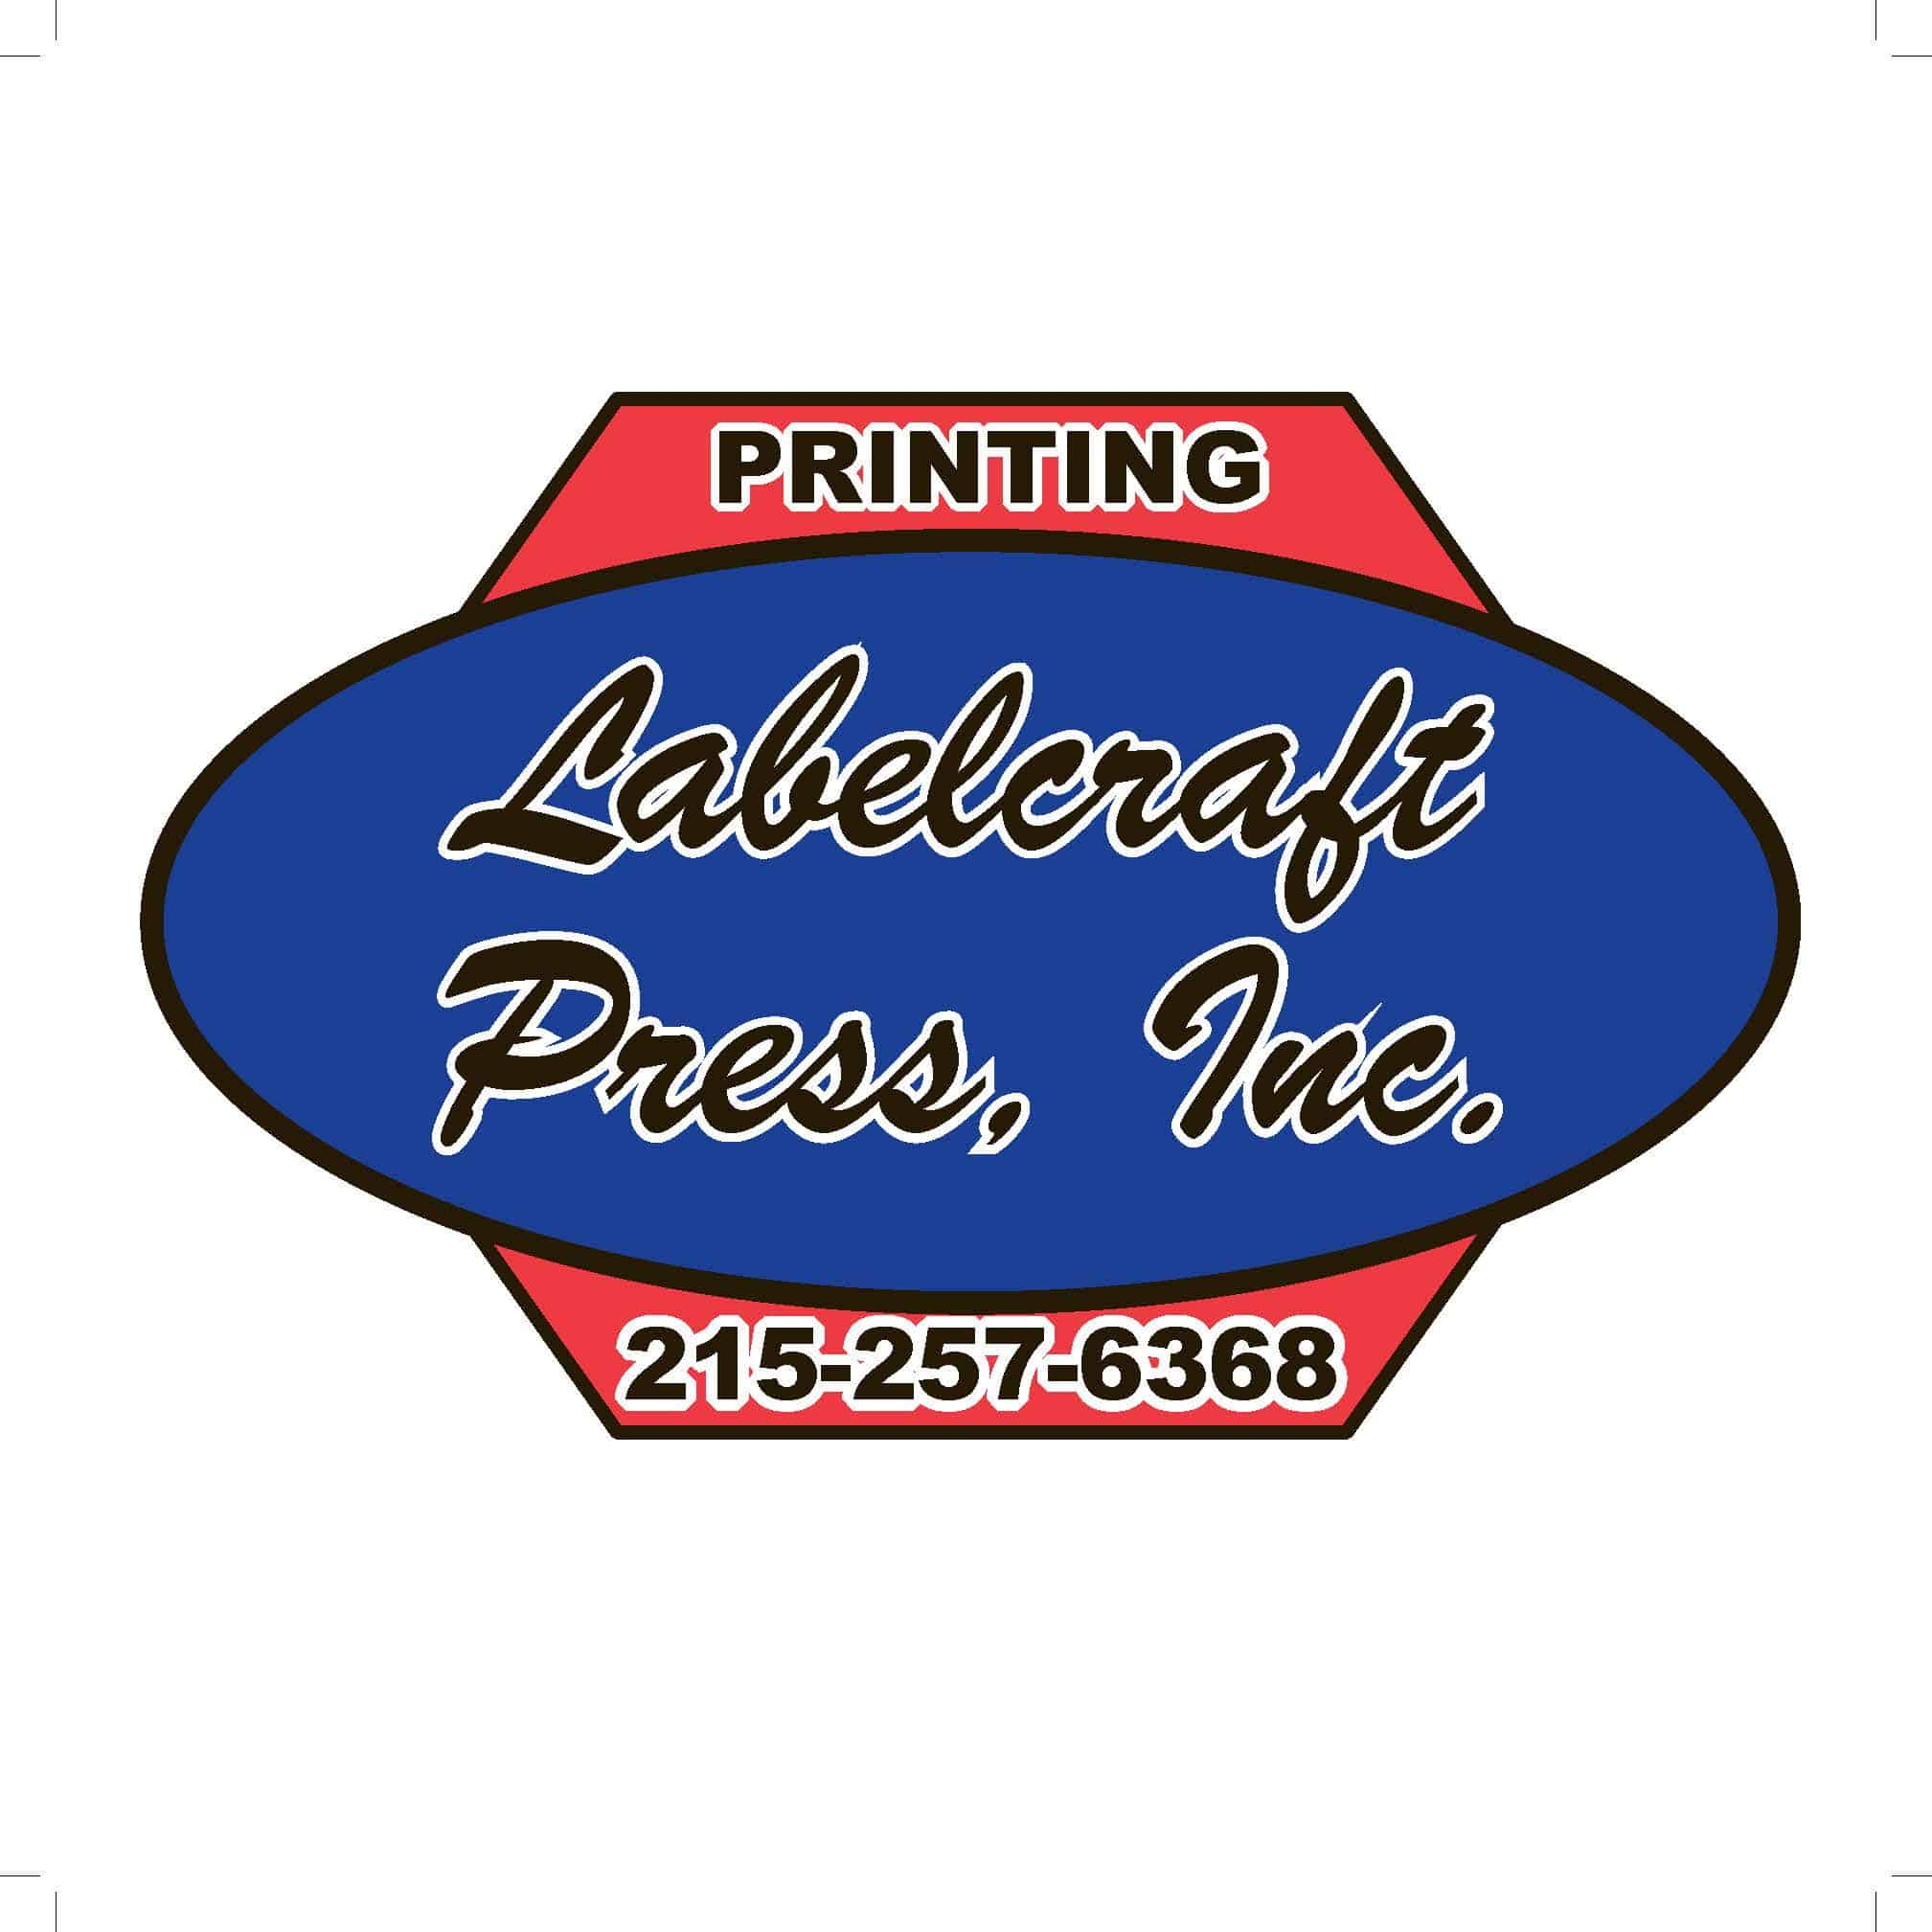 Lablecraft Press logo